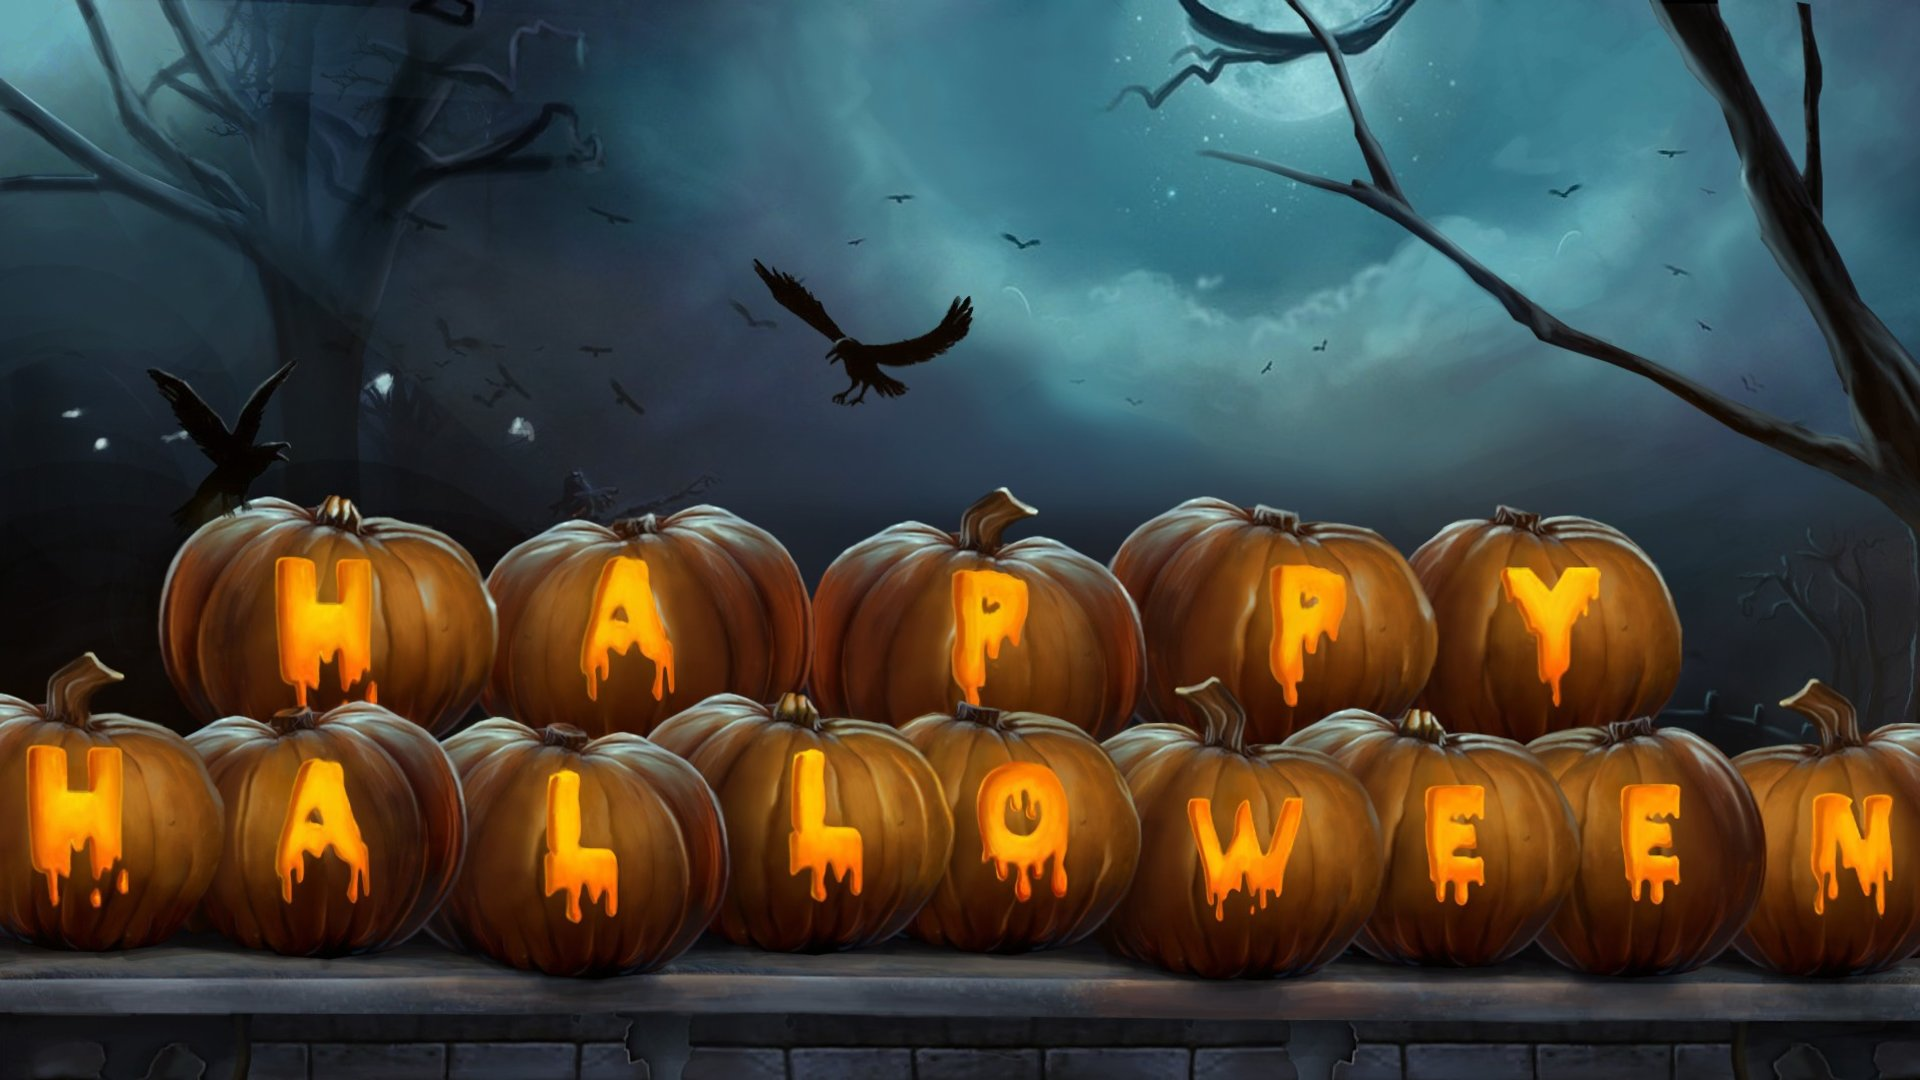 20 HD Wallpapers For Your Halloween Spirit.